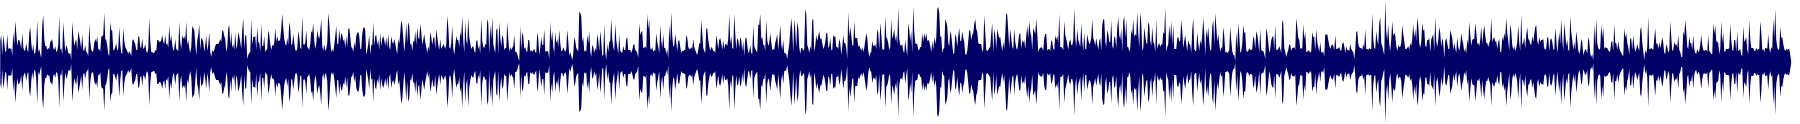 waveform of track #72830